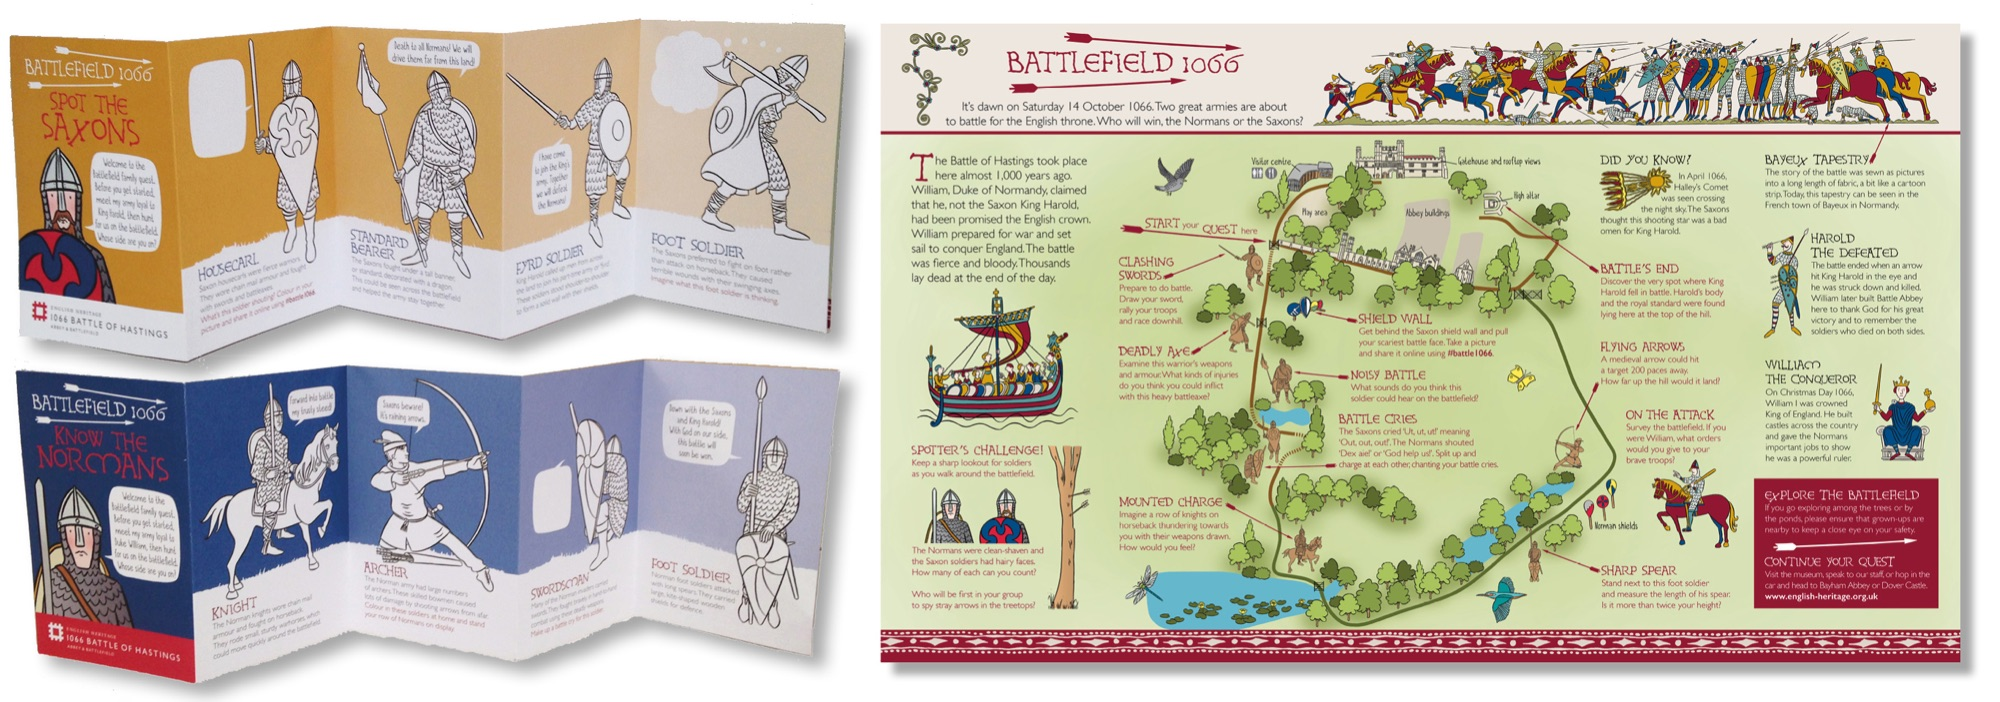 Blackbird Publishing Family Activity Trails Fold-out Booklet with Picture  Map English Heritage Battle